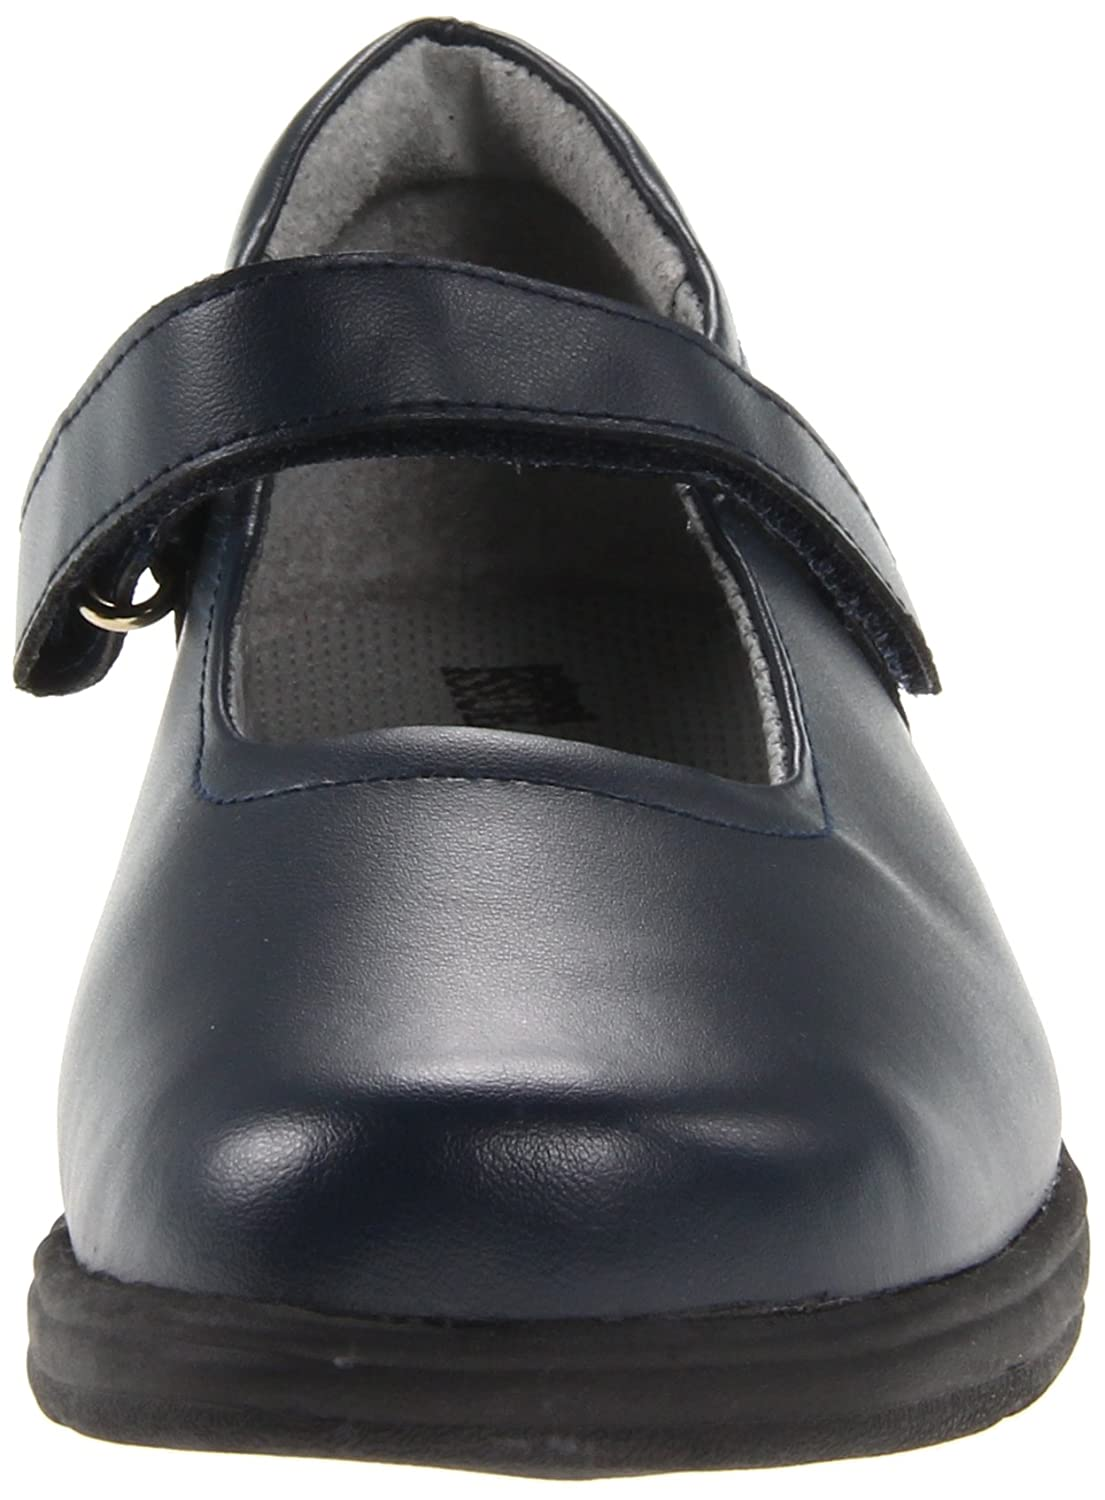 School Issue Womens Prodigy (Adult) Hook and Loop B00AEZWOGE 9 B(M) US|Dark Navy Leather